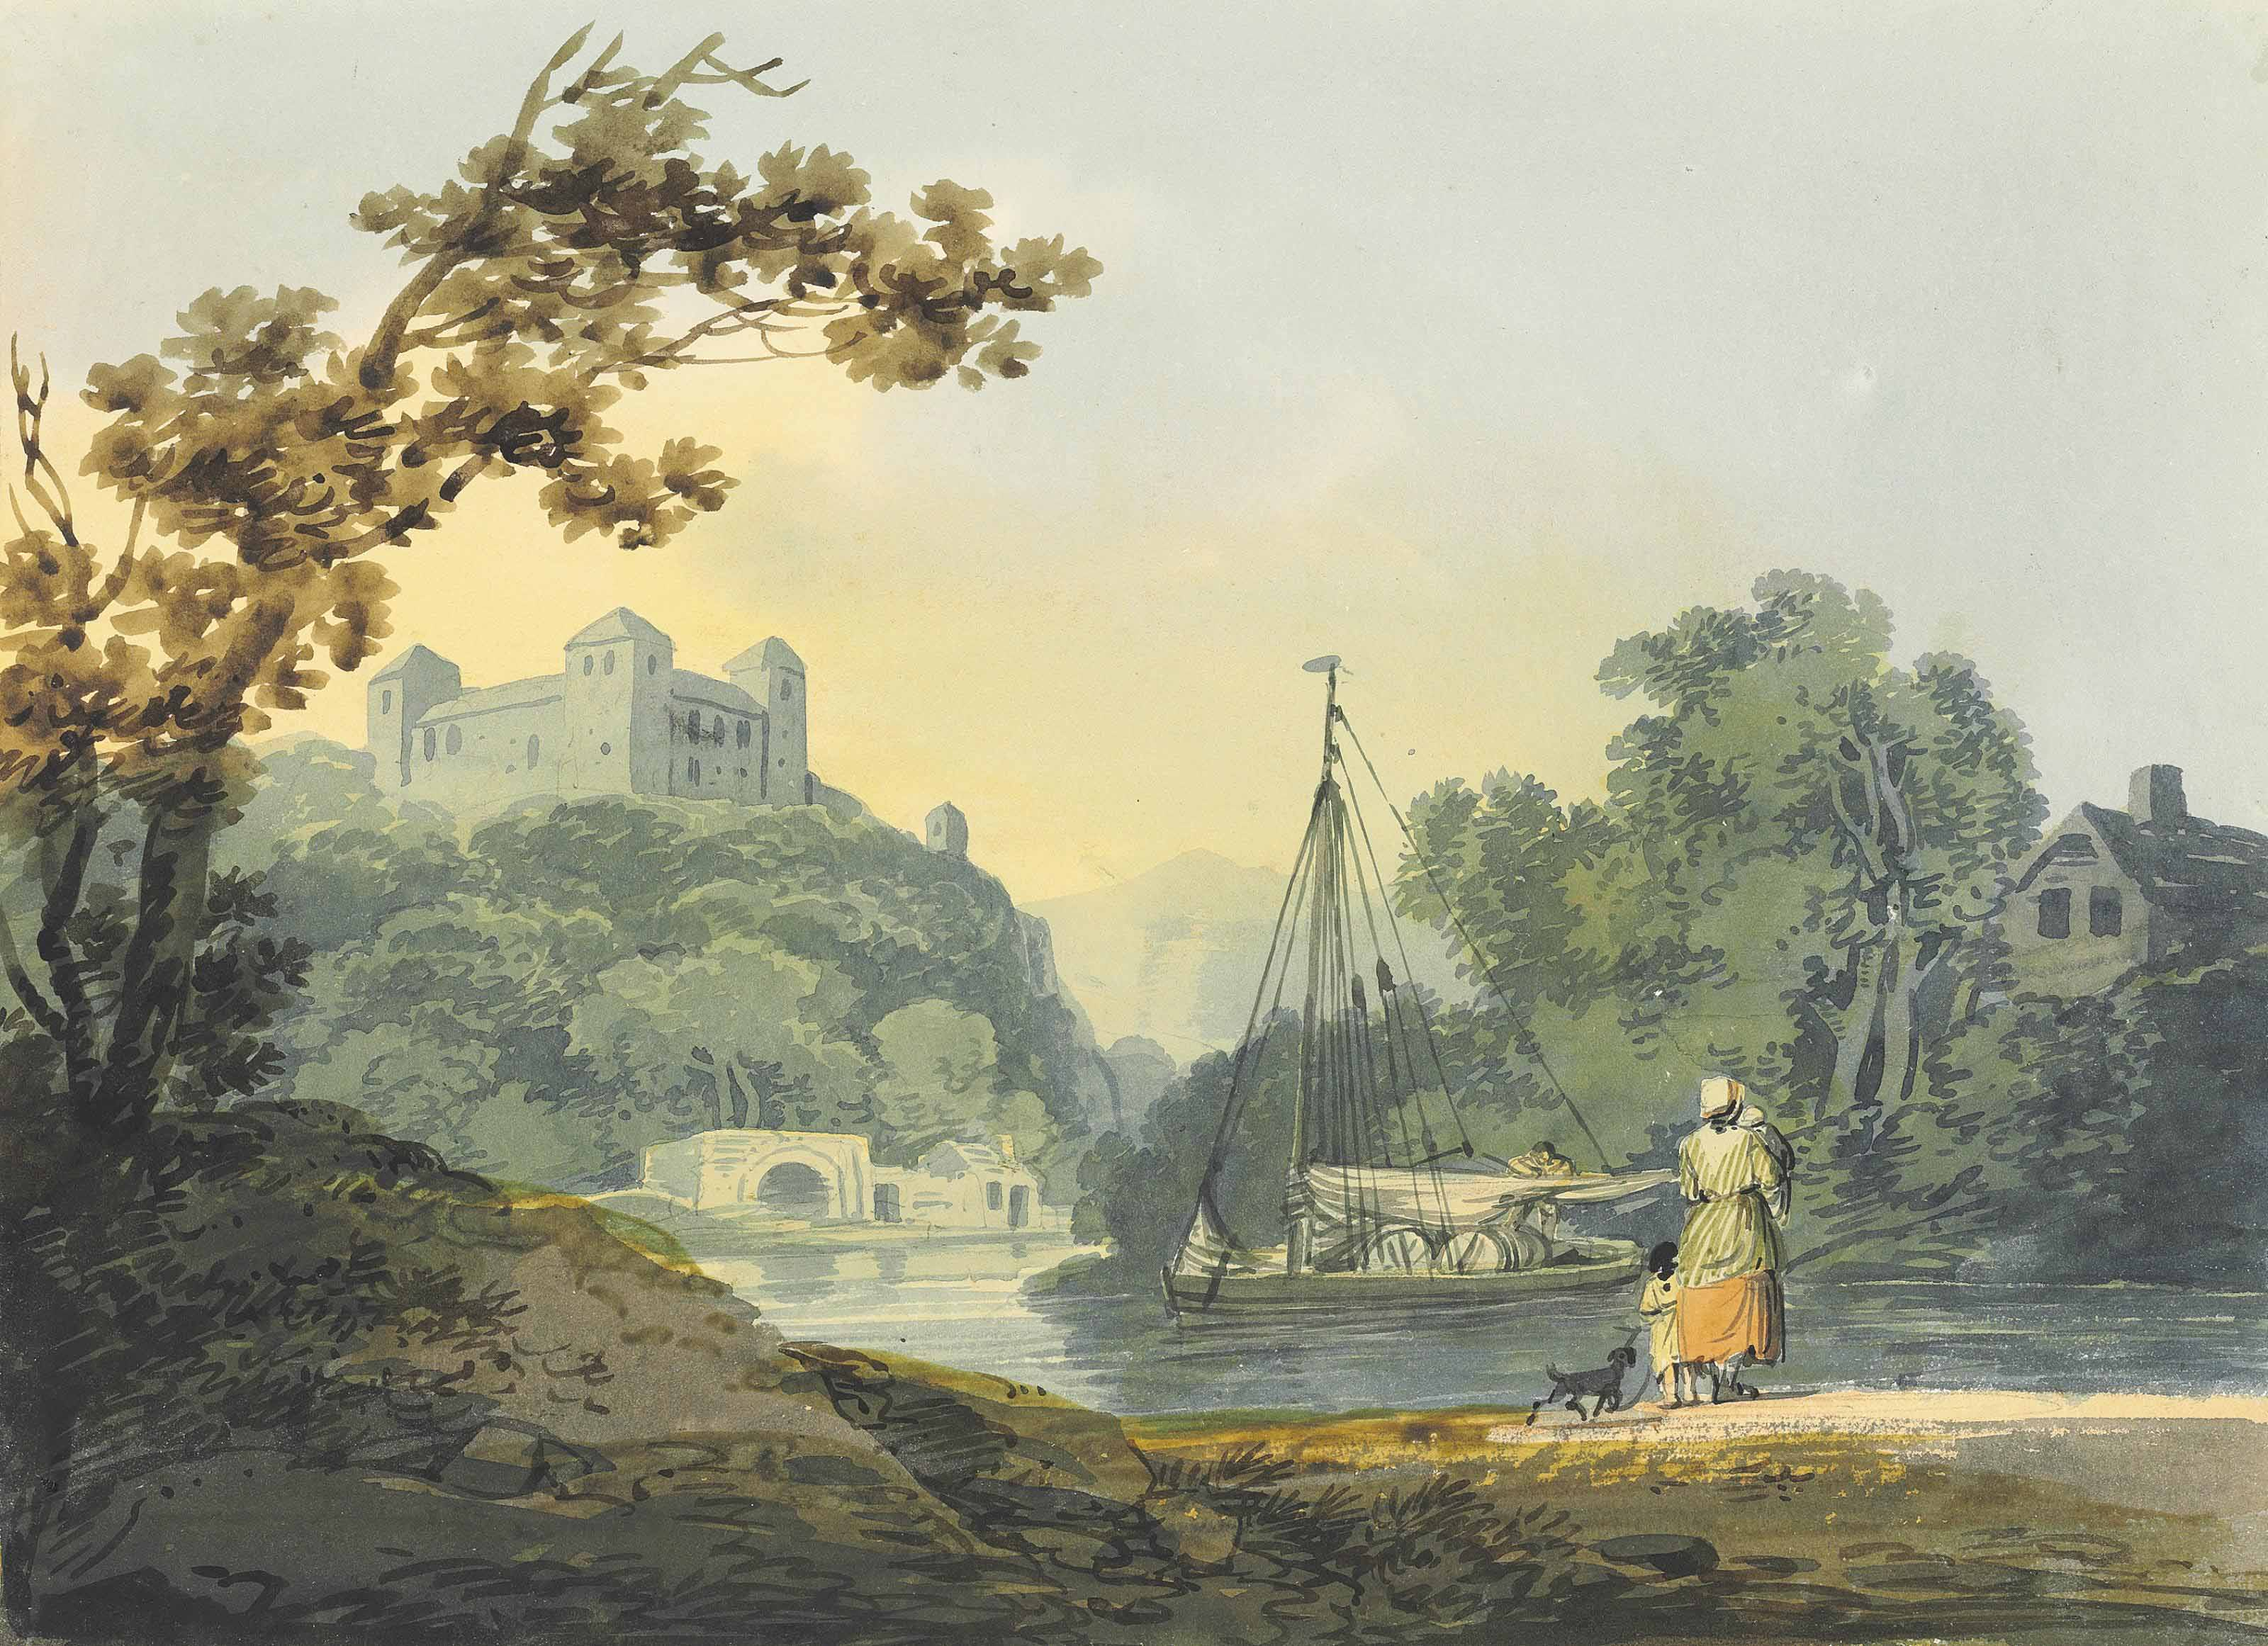 Figures and a dog on the banks of an estuary, a sailing barge and a castle beyond